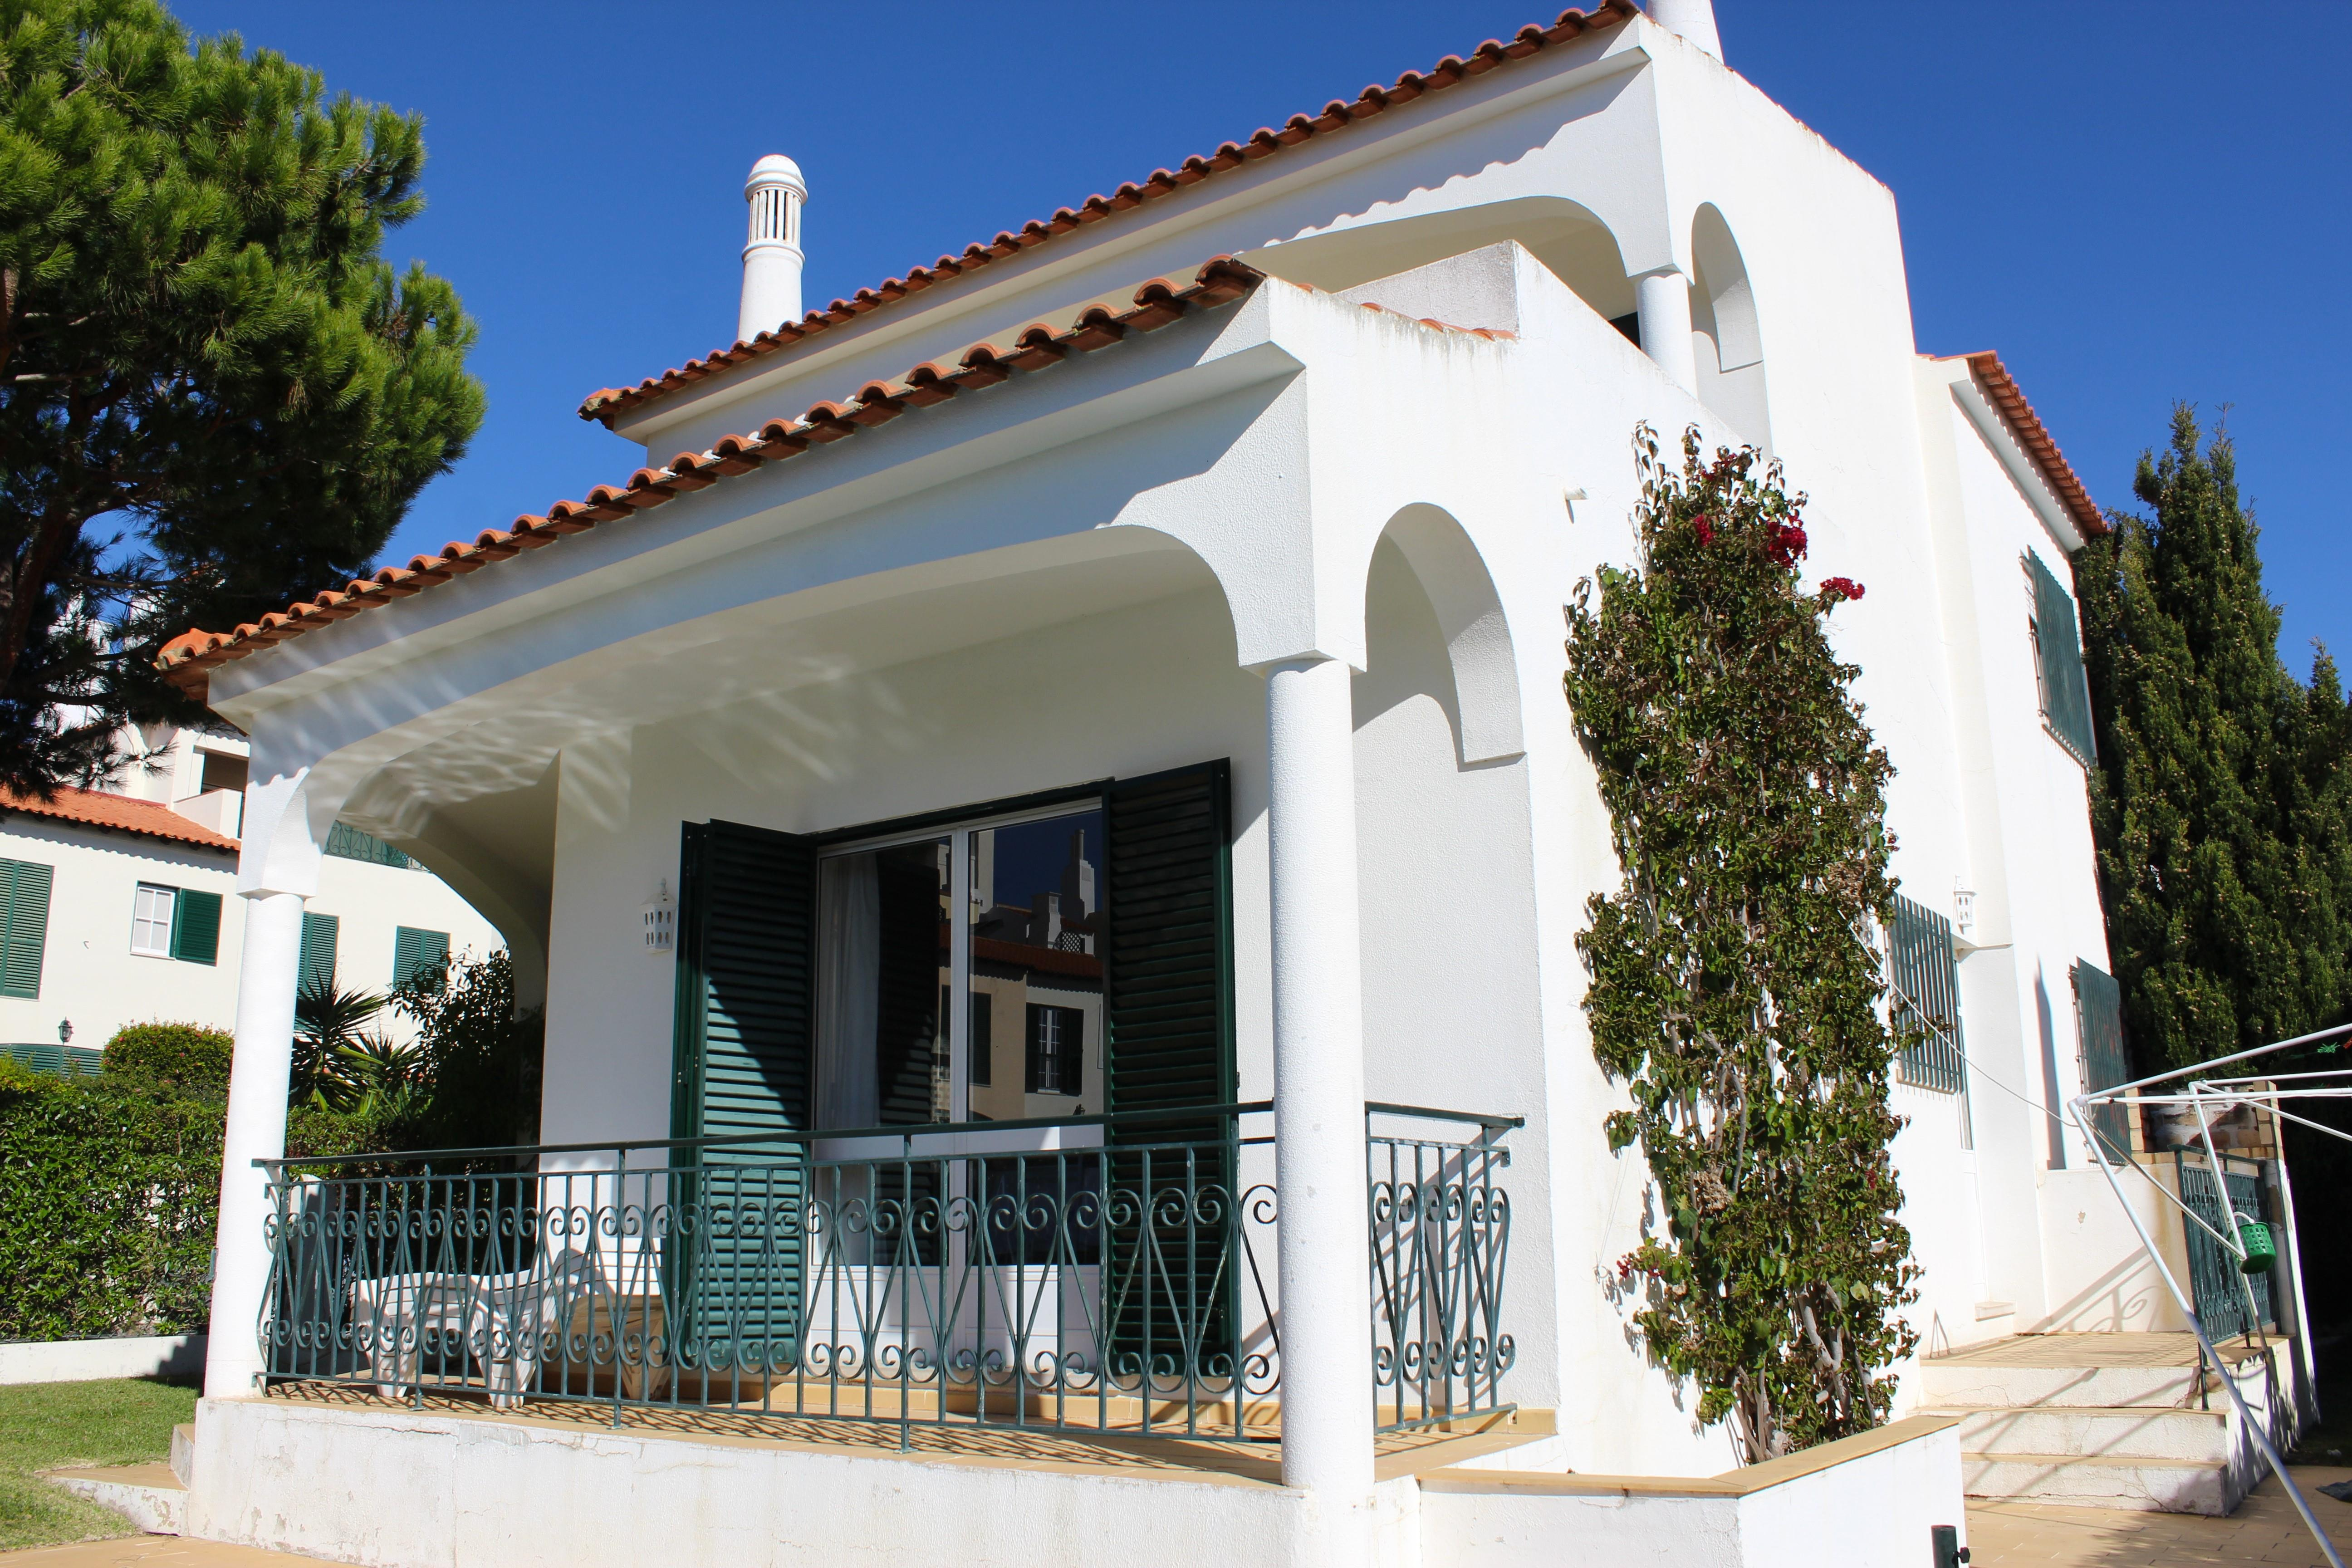 Single Family Home for Sale at Detached house, 4 bedrooms, for Sale Loule, Algarve, 8125-001 Portugal